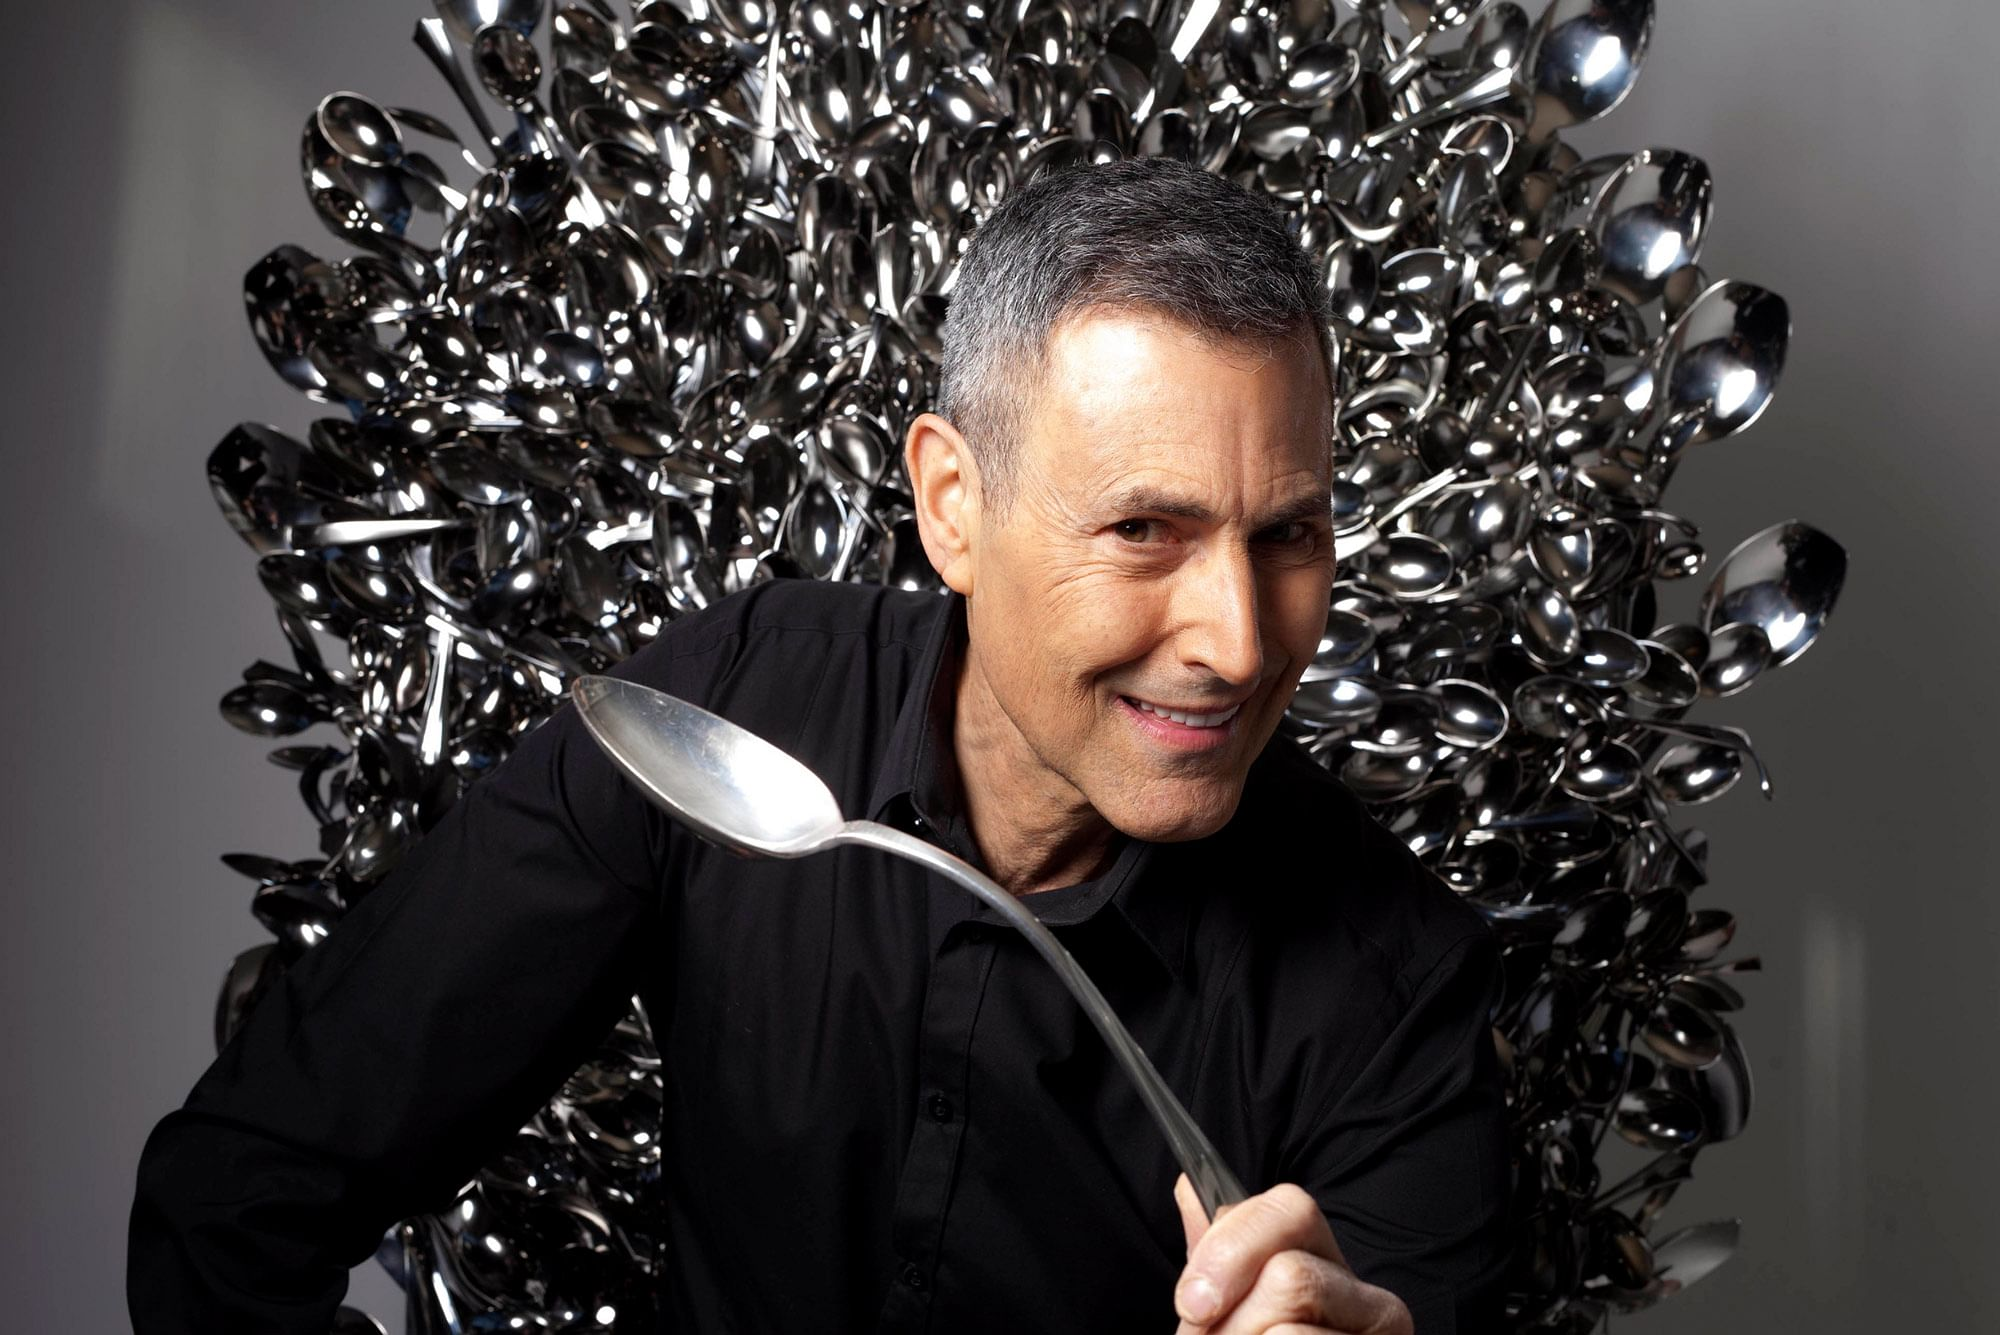 Controversial mentalist, psychic and spoon-bender Uri Geller sits on a throne of lies made of bent spoons